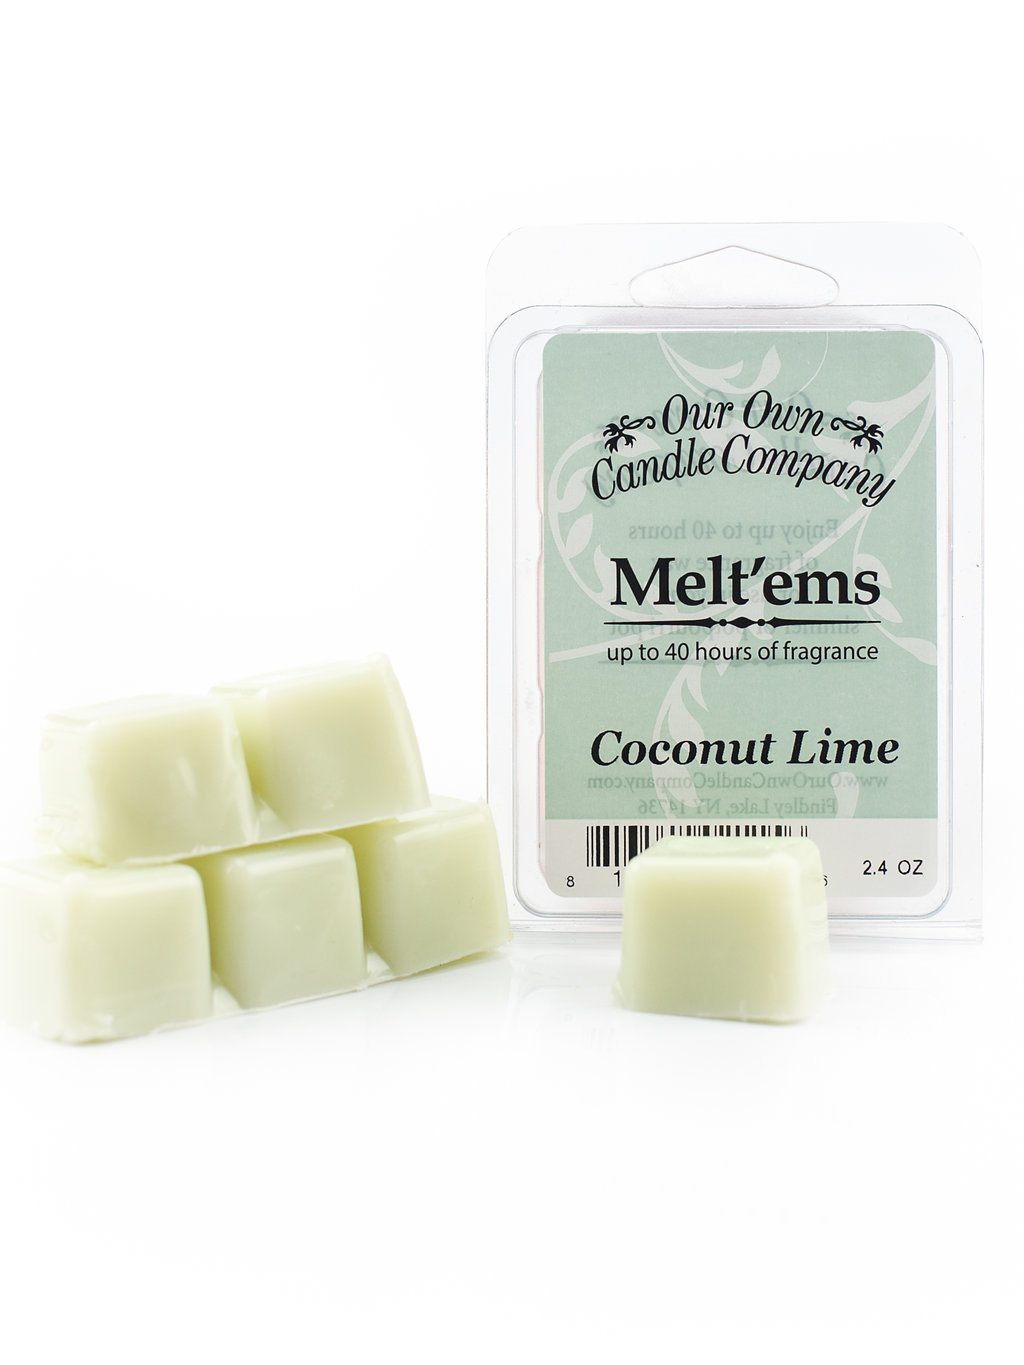 COCONUT LIME MELT 6 CUBE 2.4 OZ UPC# 813542021156